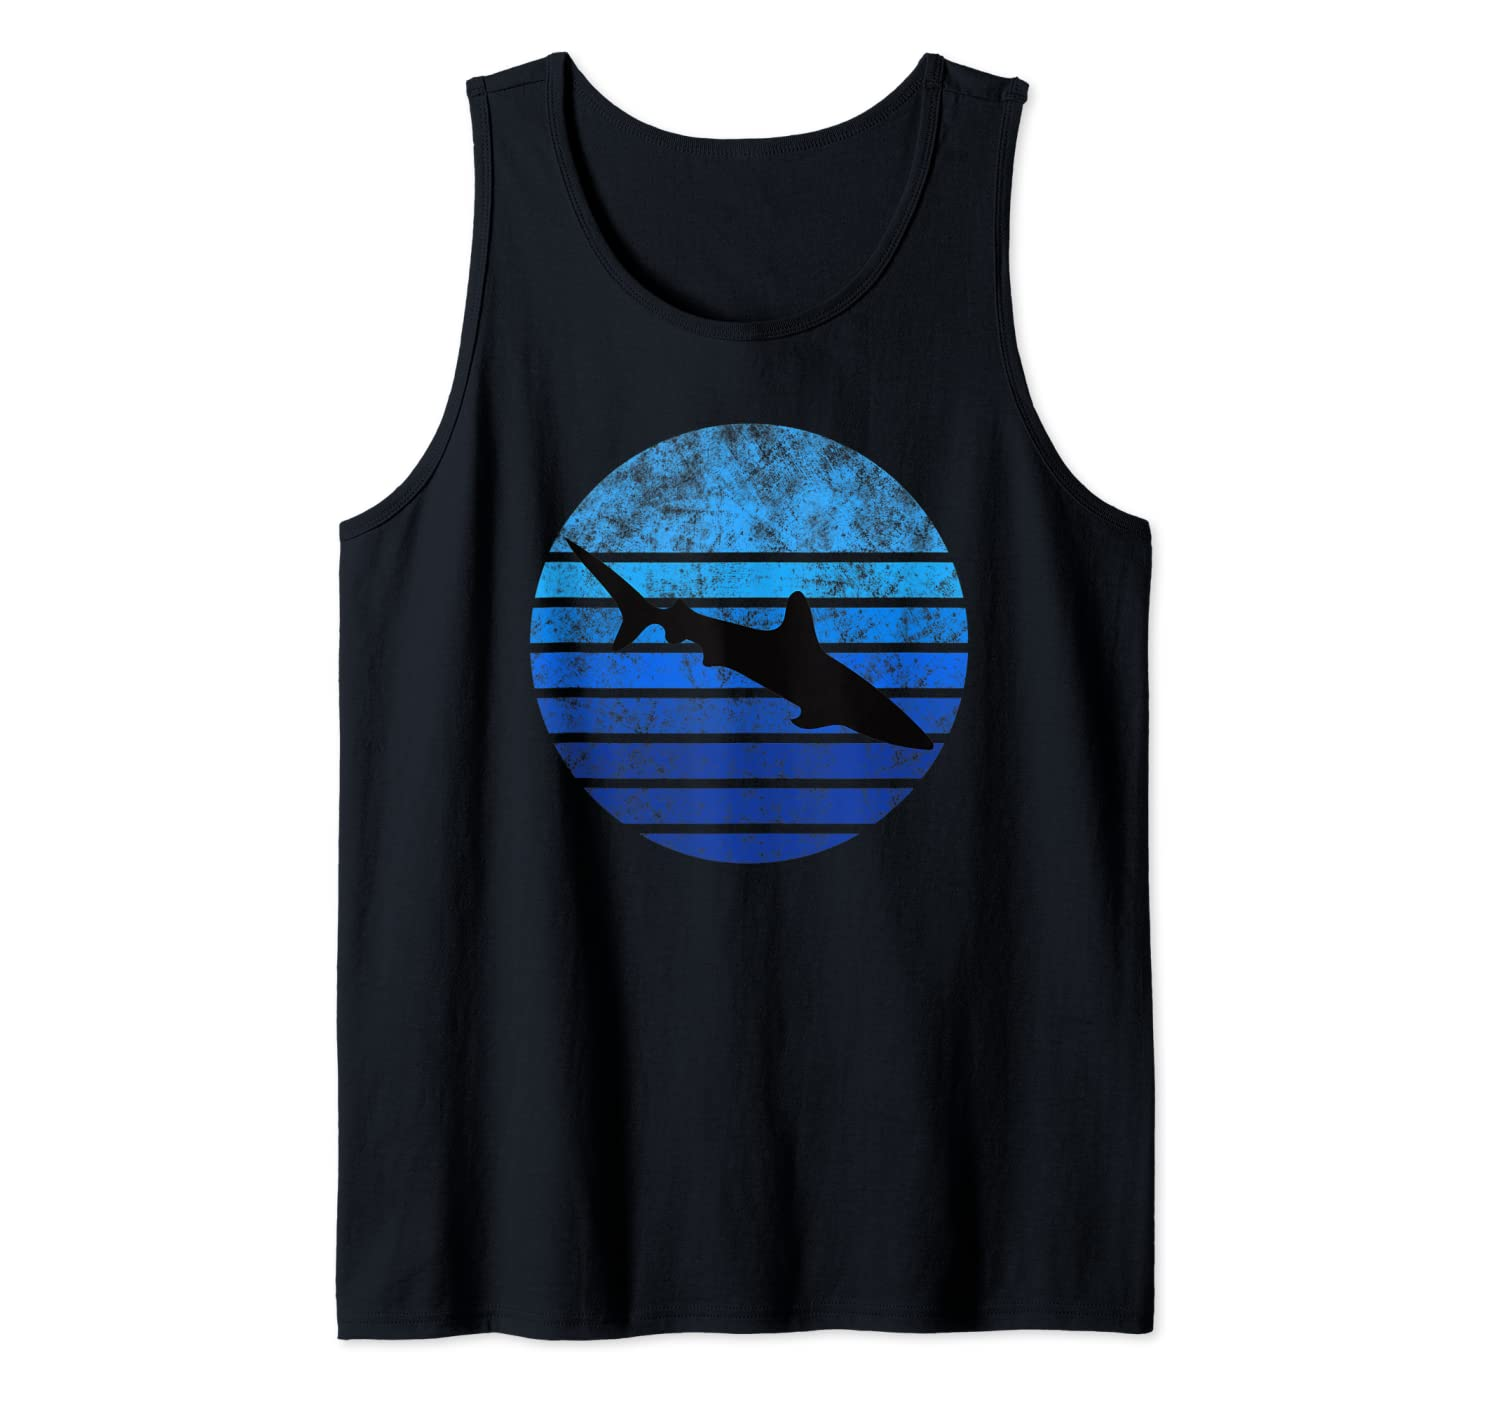 Diving with Water and Shark. Perfect Dive Apnea Great Diver Tank Top